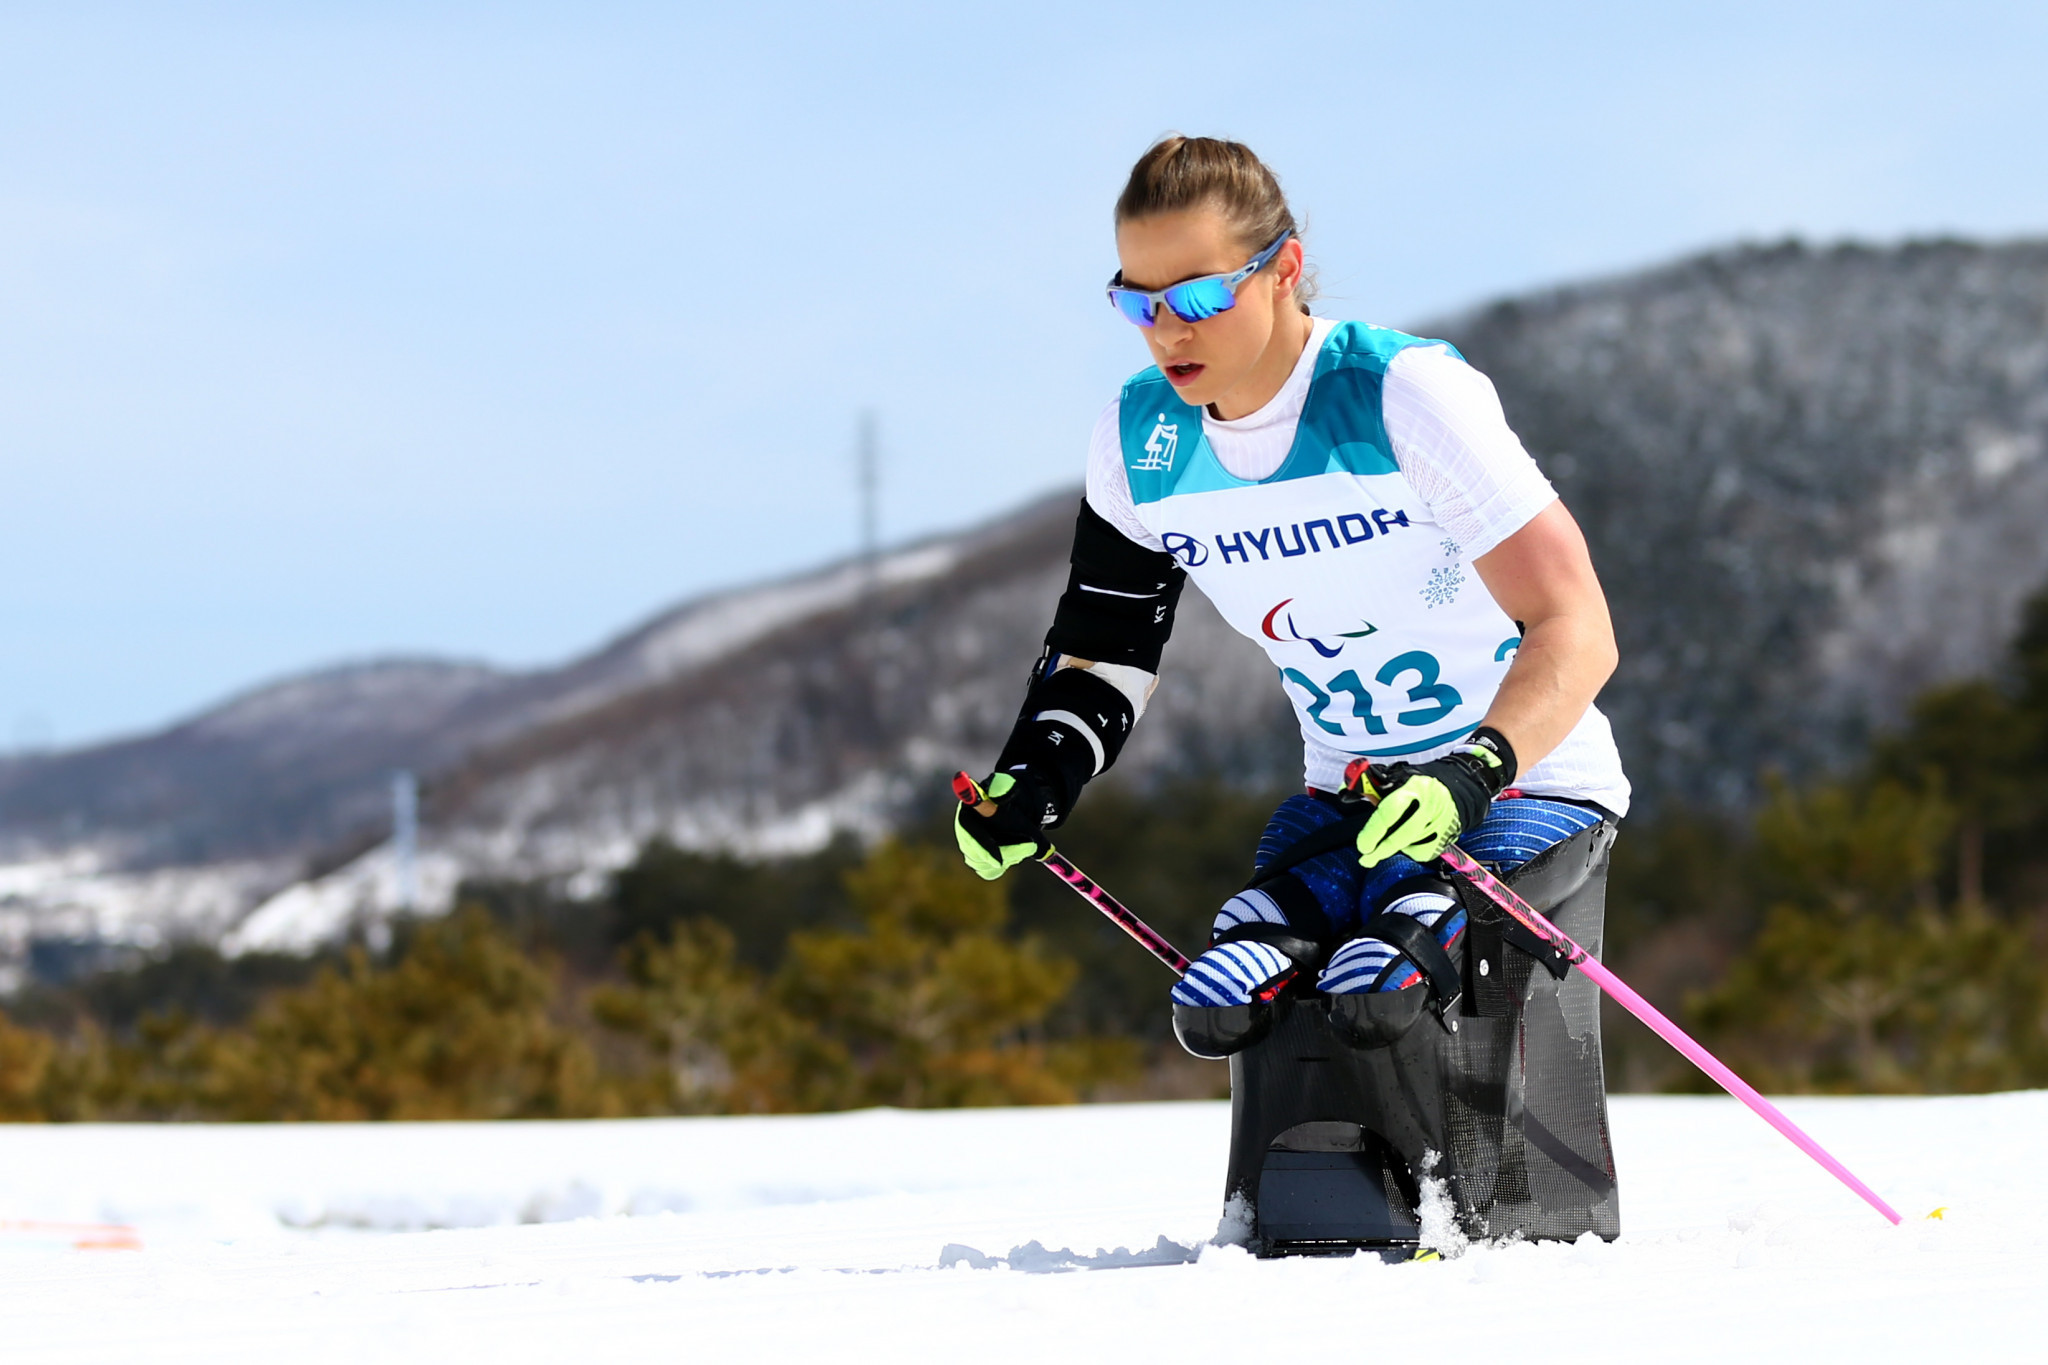 Oksana Masters has been nominated for the Team USA female athlete of the month awarc for her performance at the Para Nordic Skiing World Cup ©Getty Images